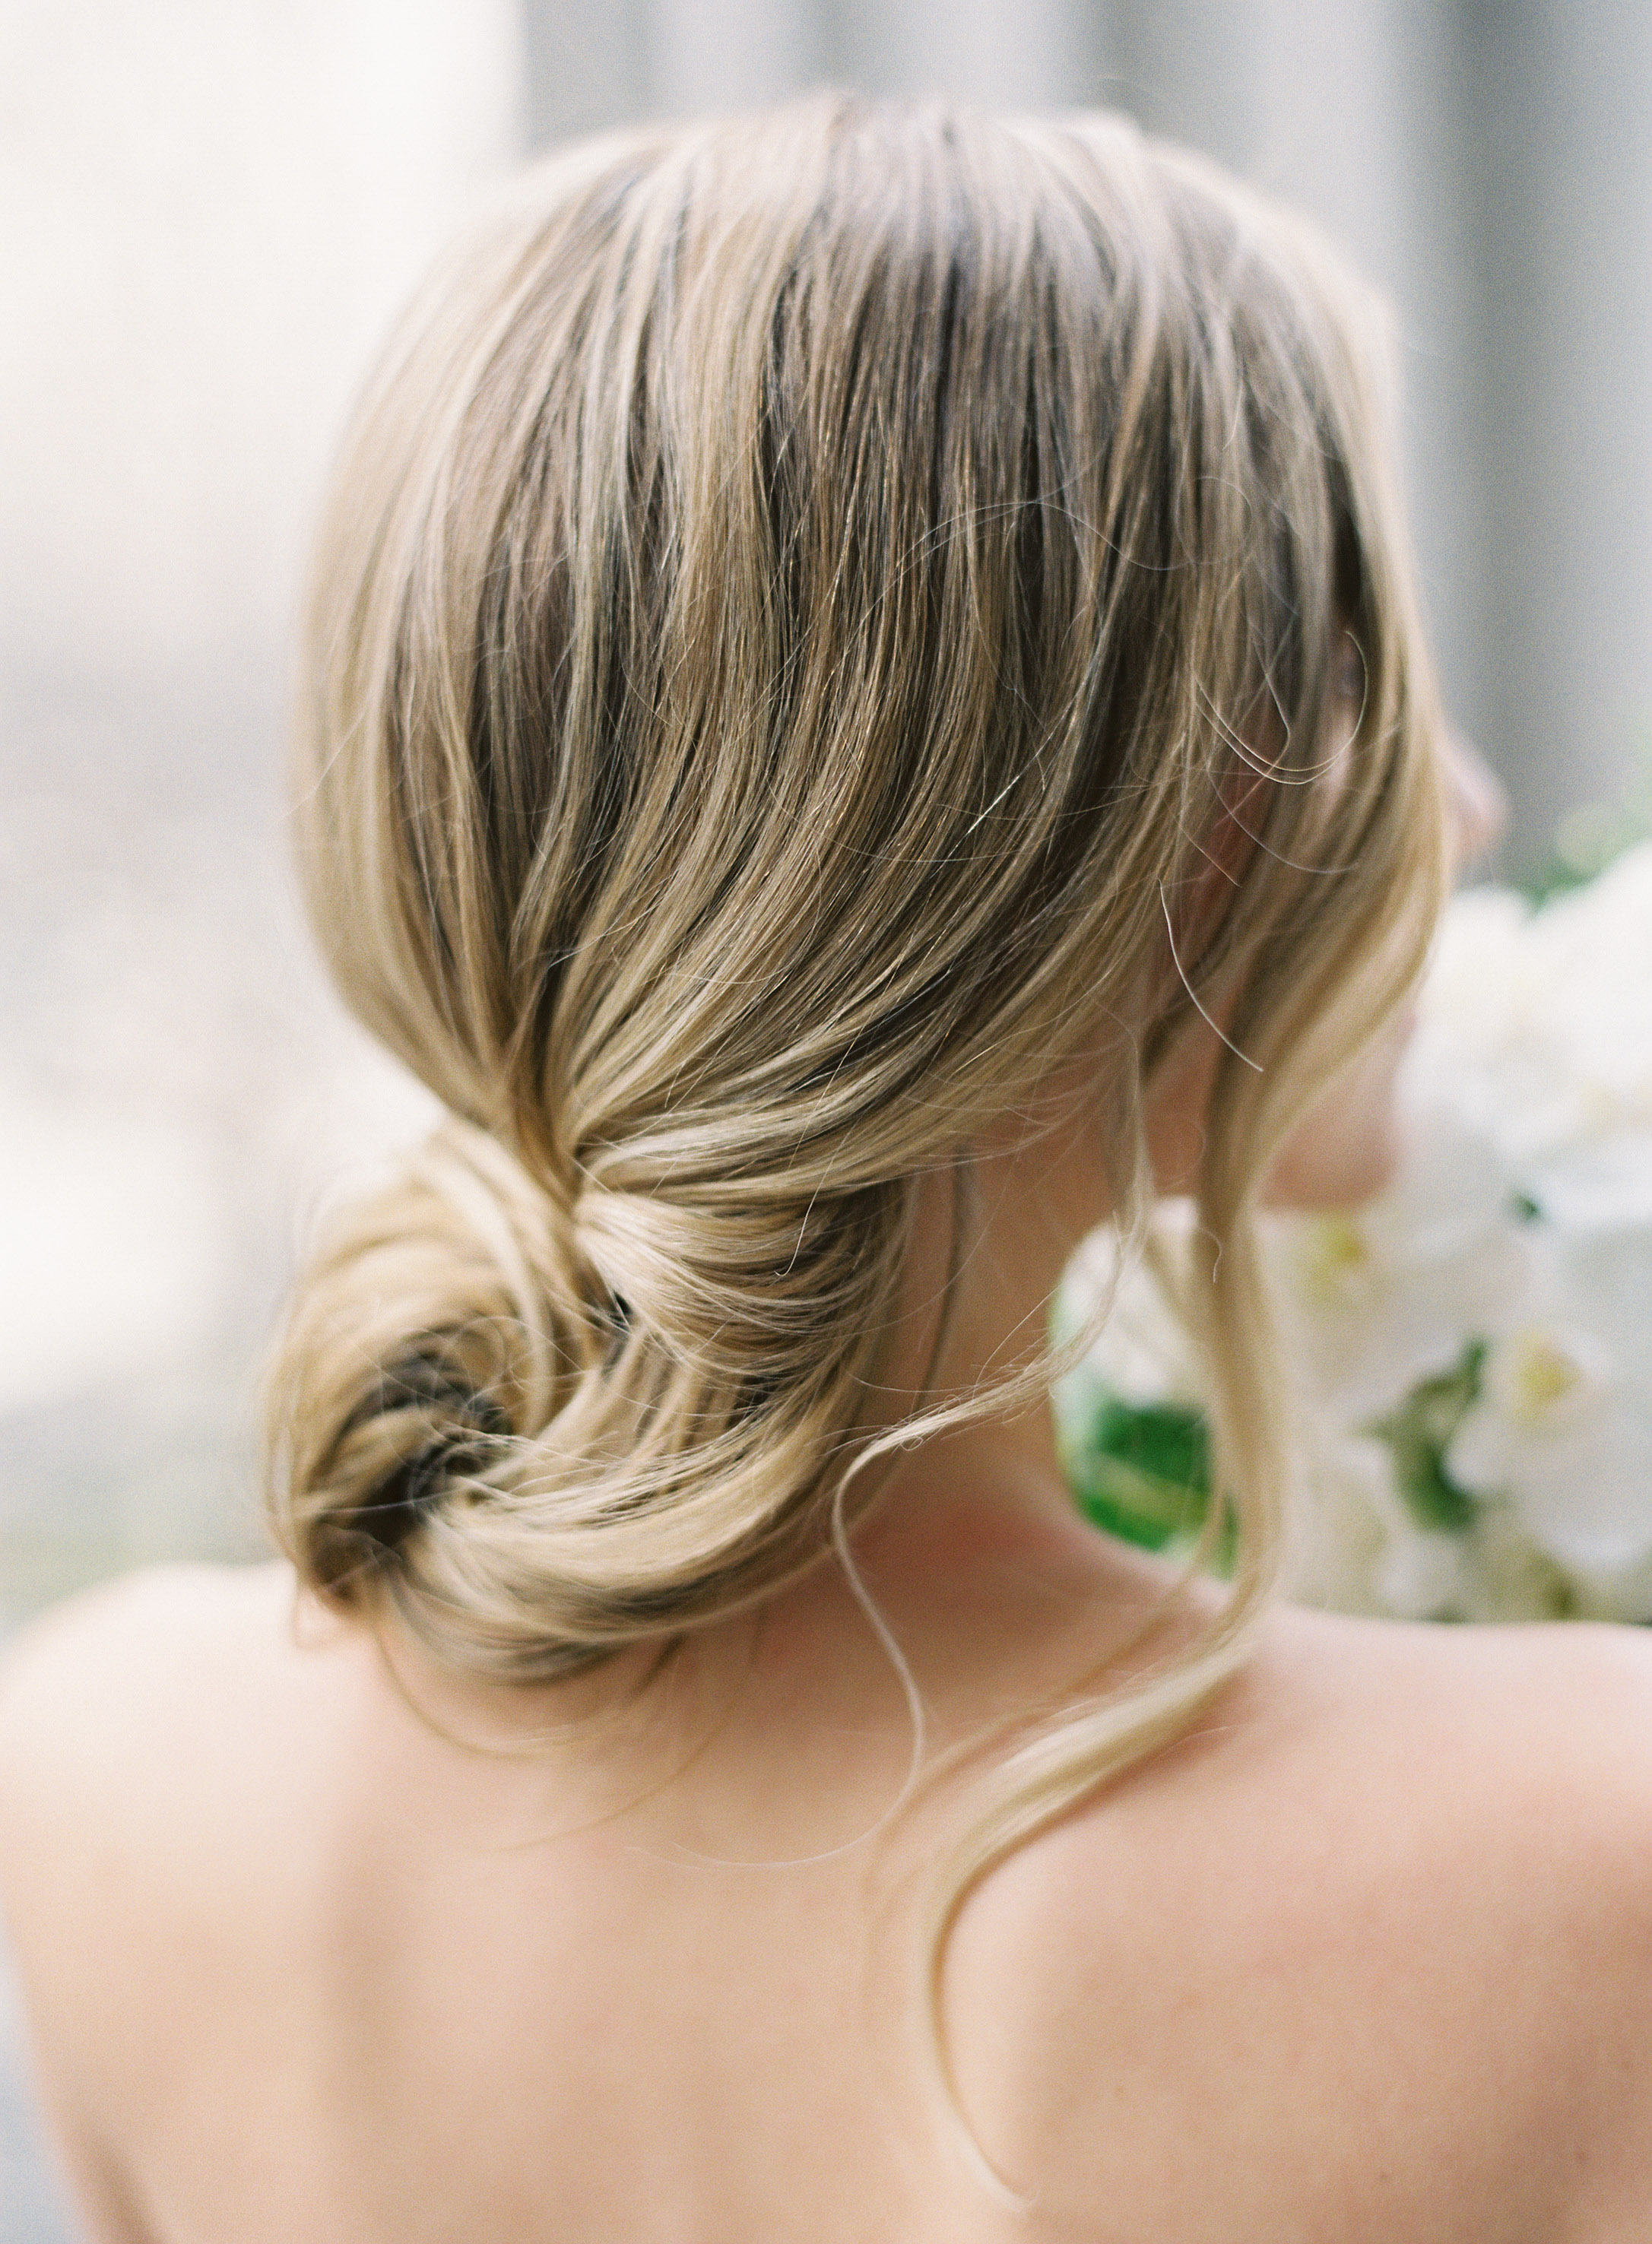 55 Simple Wedding Hairstyles That Prove Less Is More